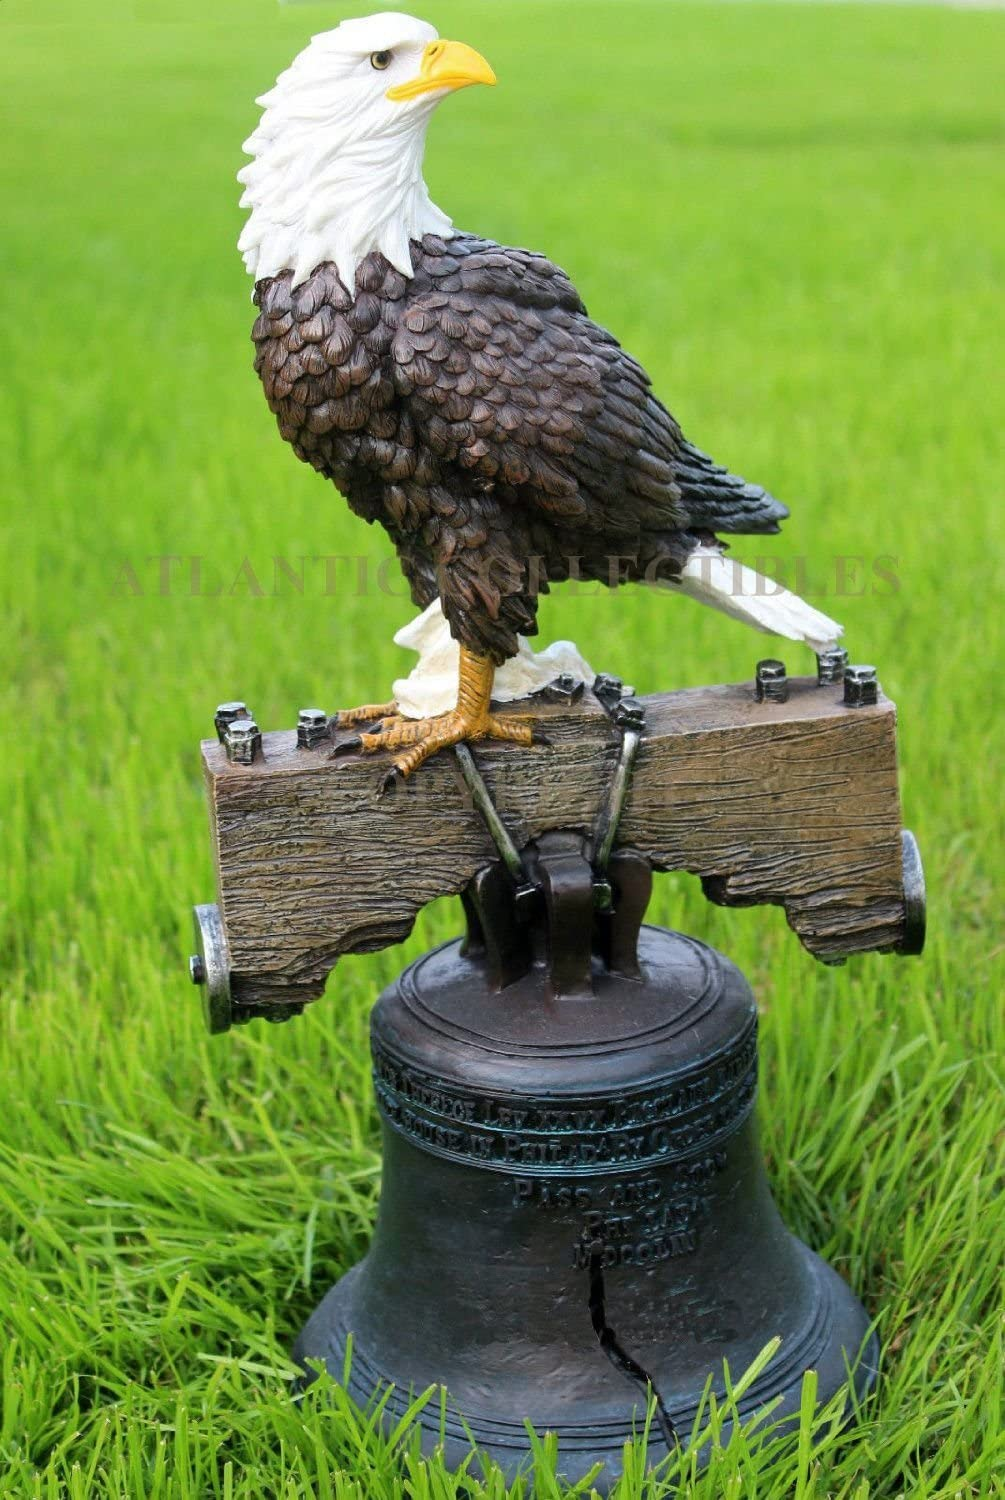 Atlantic Collectibles Independence Day American Patriotic Glory Bald Eagle Liberty Bell Home Patio Decor Figurine Great 4th of July Wings of Glory Pride Symbolic Statue